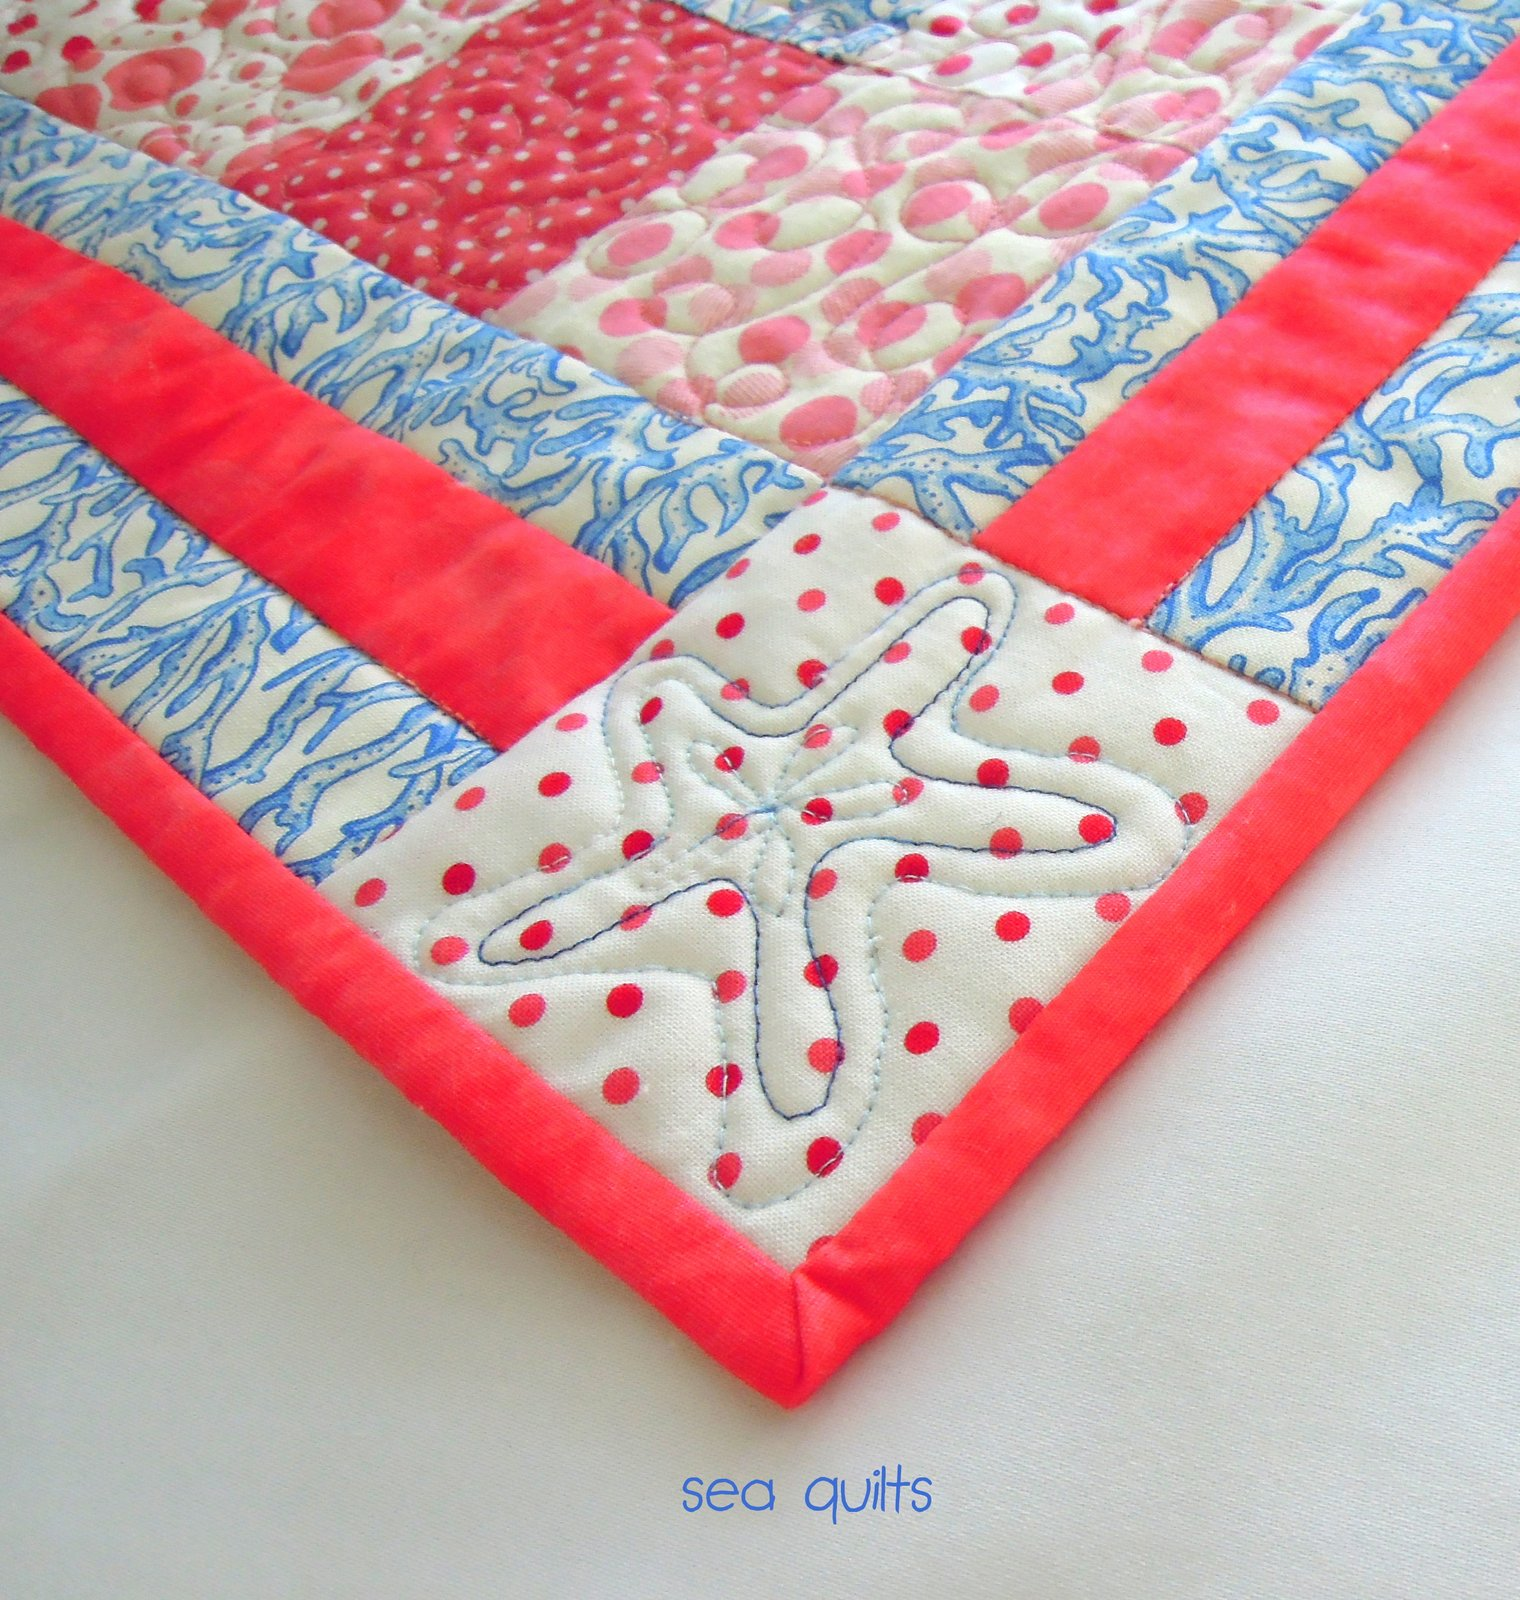 Quilt Binding Tutorial: Part Two